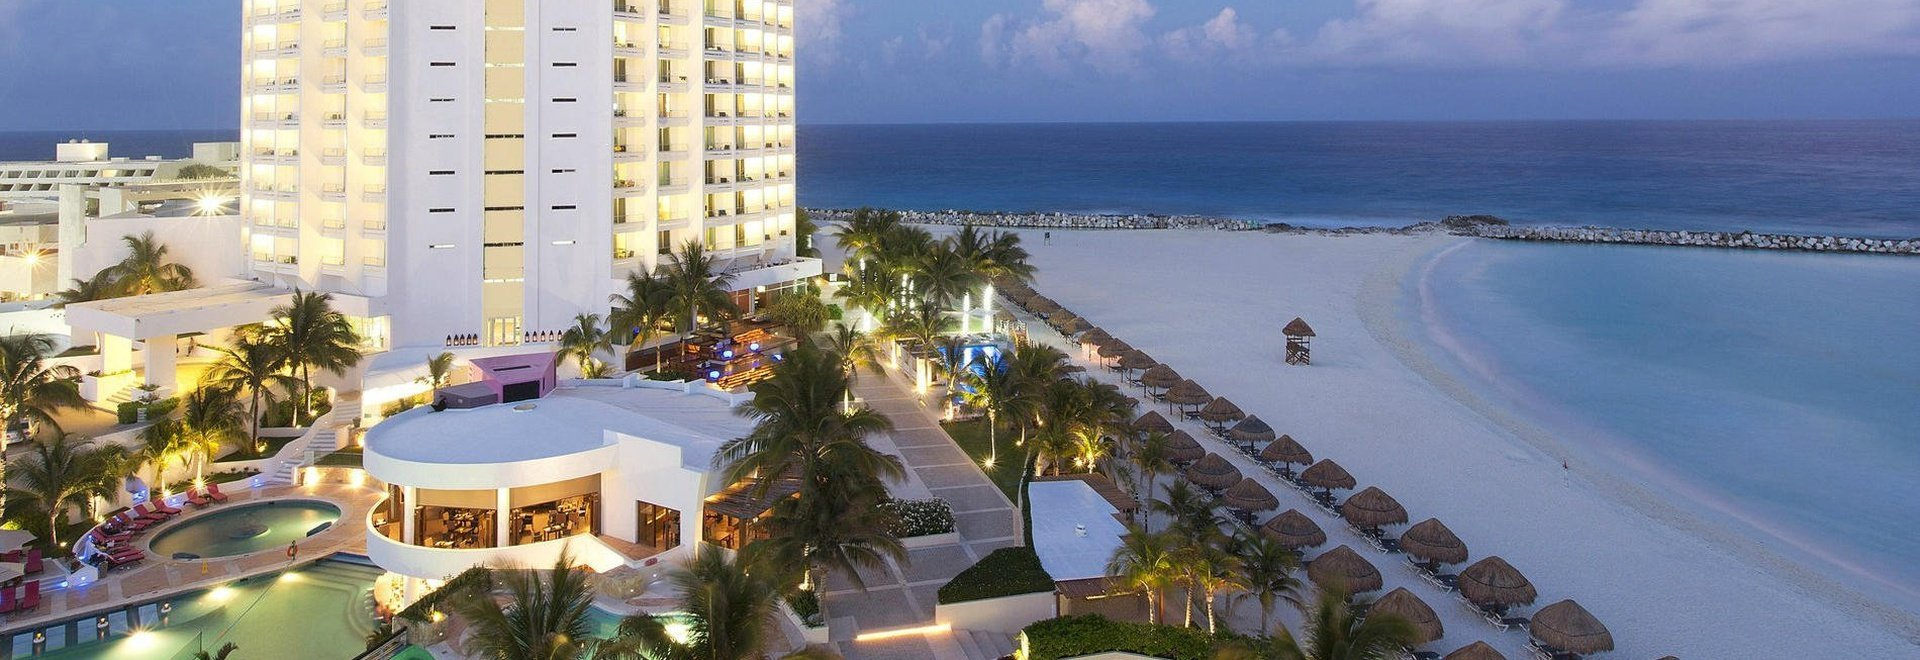 Hotel Reflect Cancún Resort & Spa -